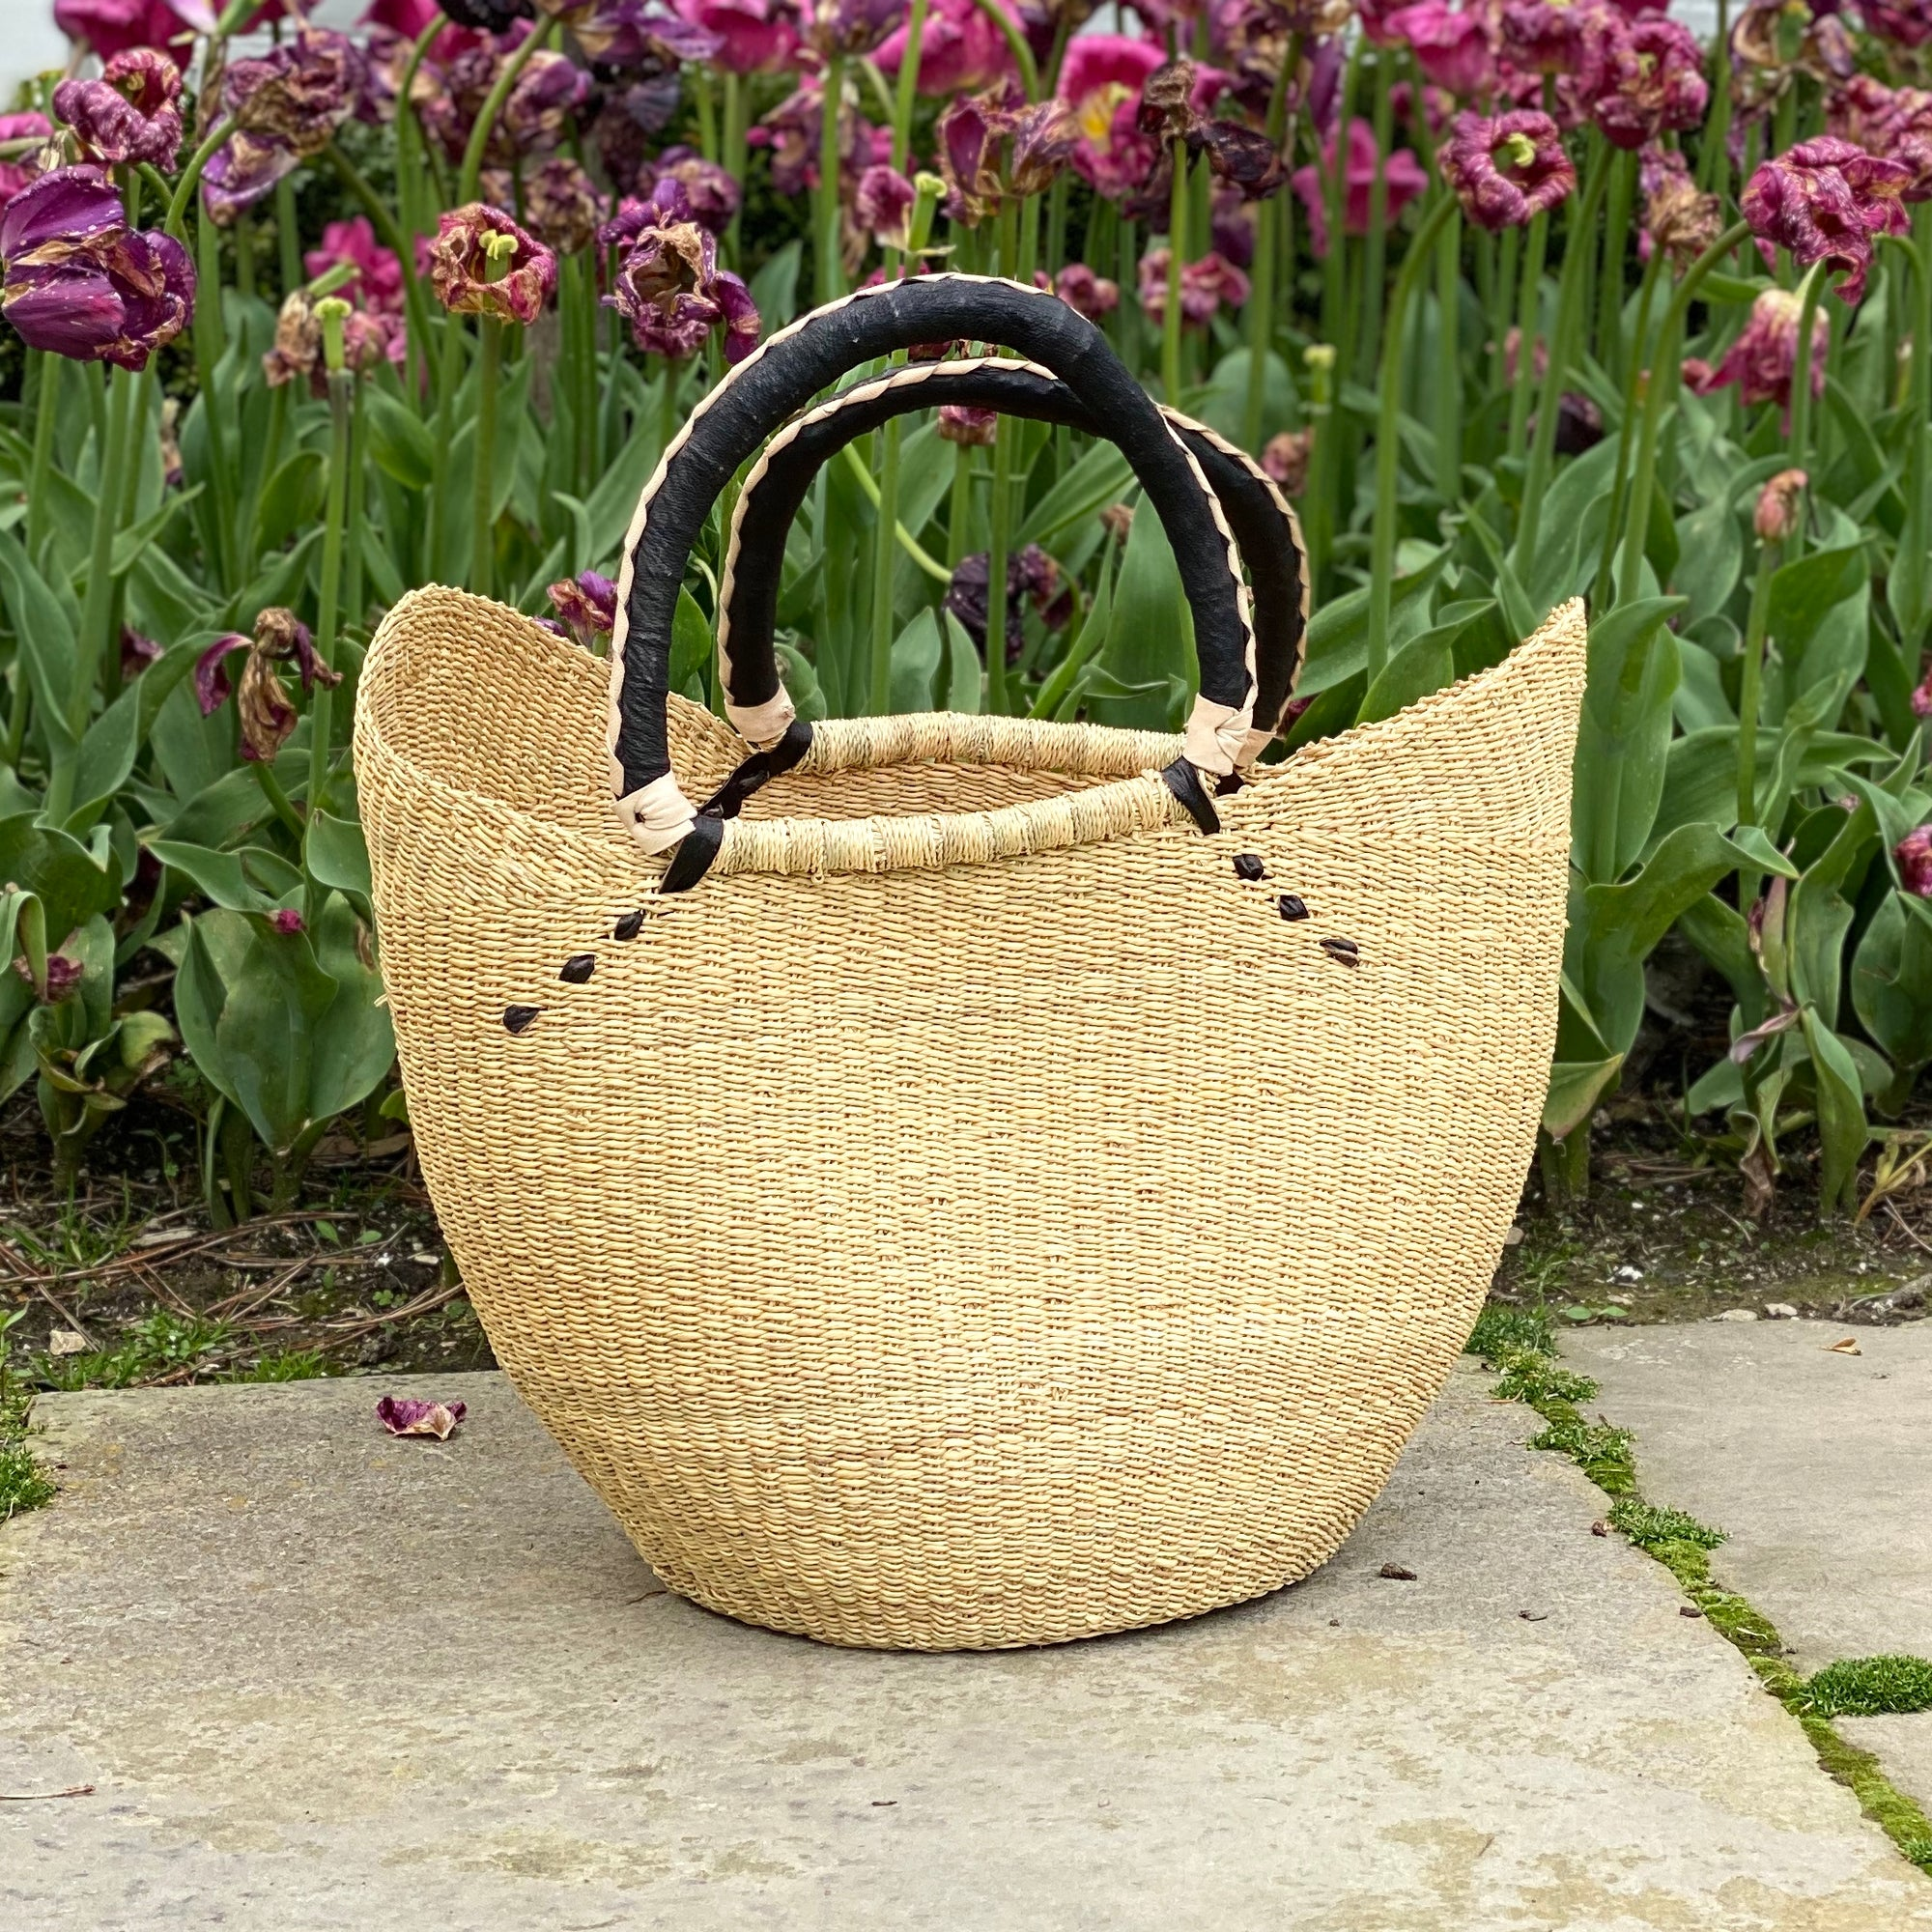 Bolga Tote, Natural with Black Accent and Leather Handle